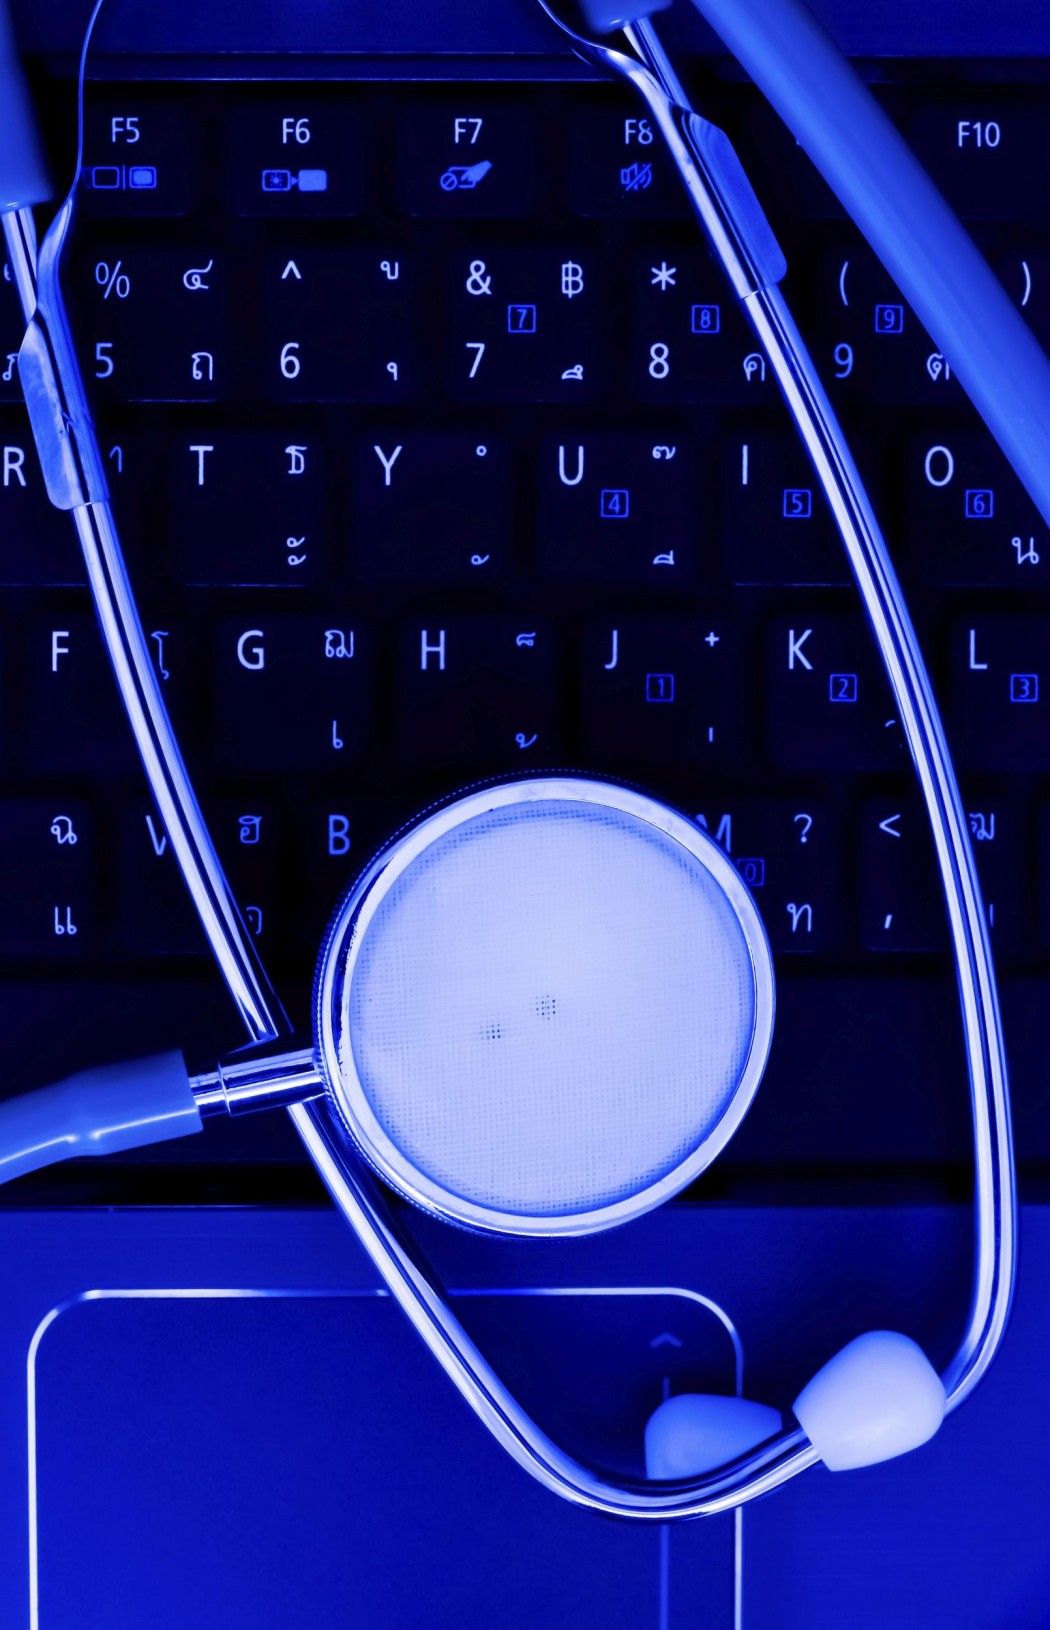 Medical stethoscope and a portable laptop. Medical Information and technology concept.